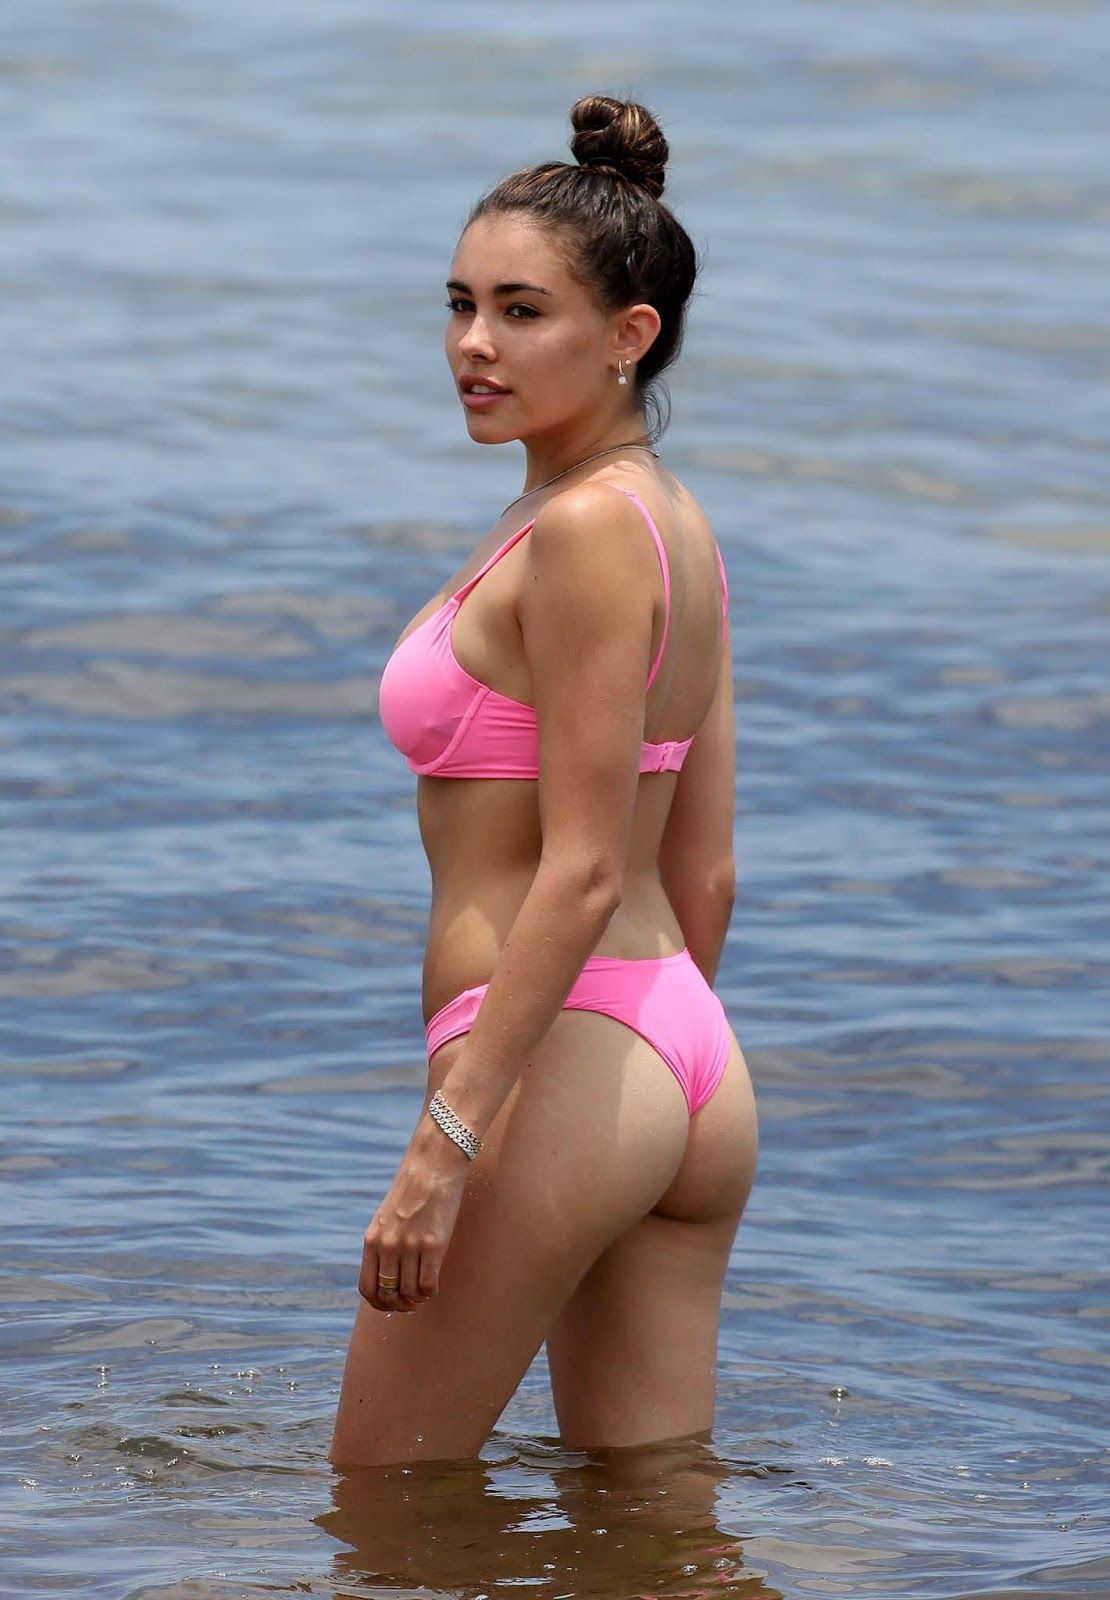 8d01252fd7 Madison Beer - Bikini in Miami Beach, Florida - June 23, 2018 ...